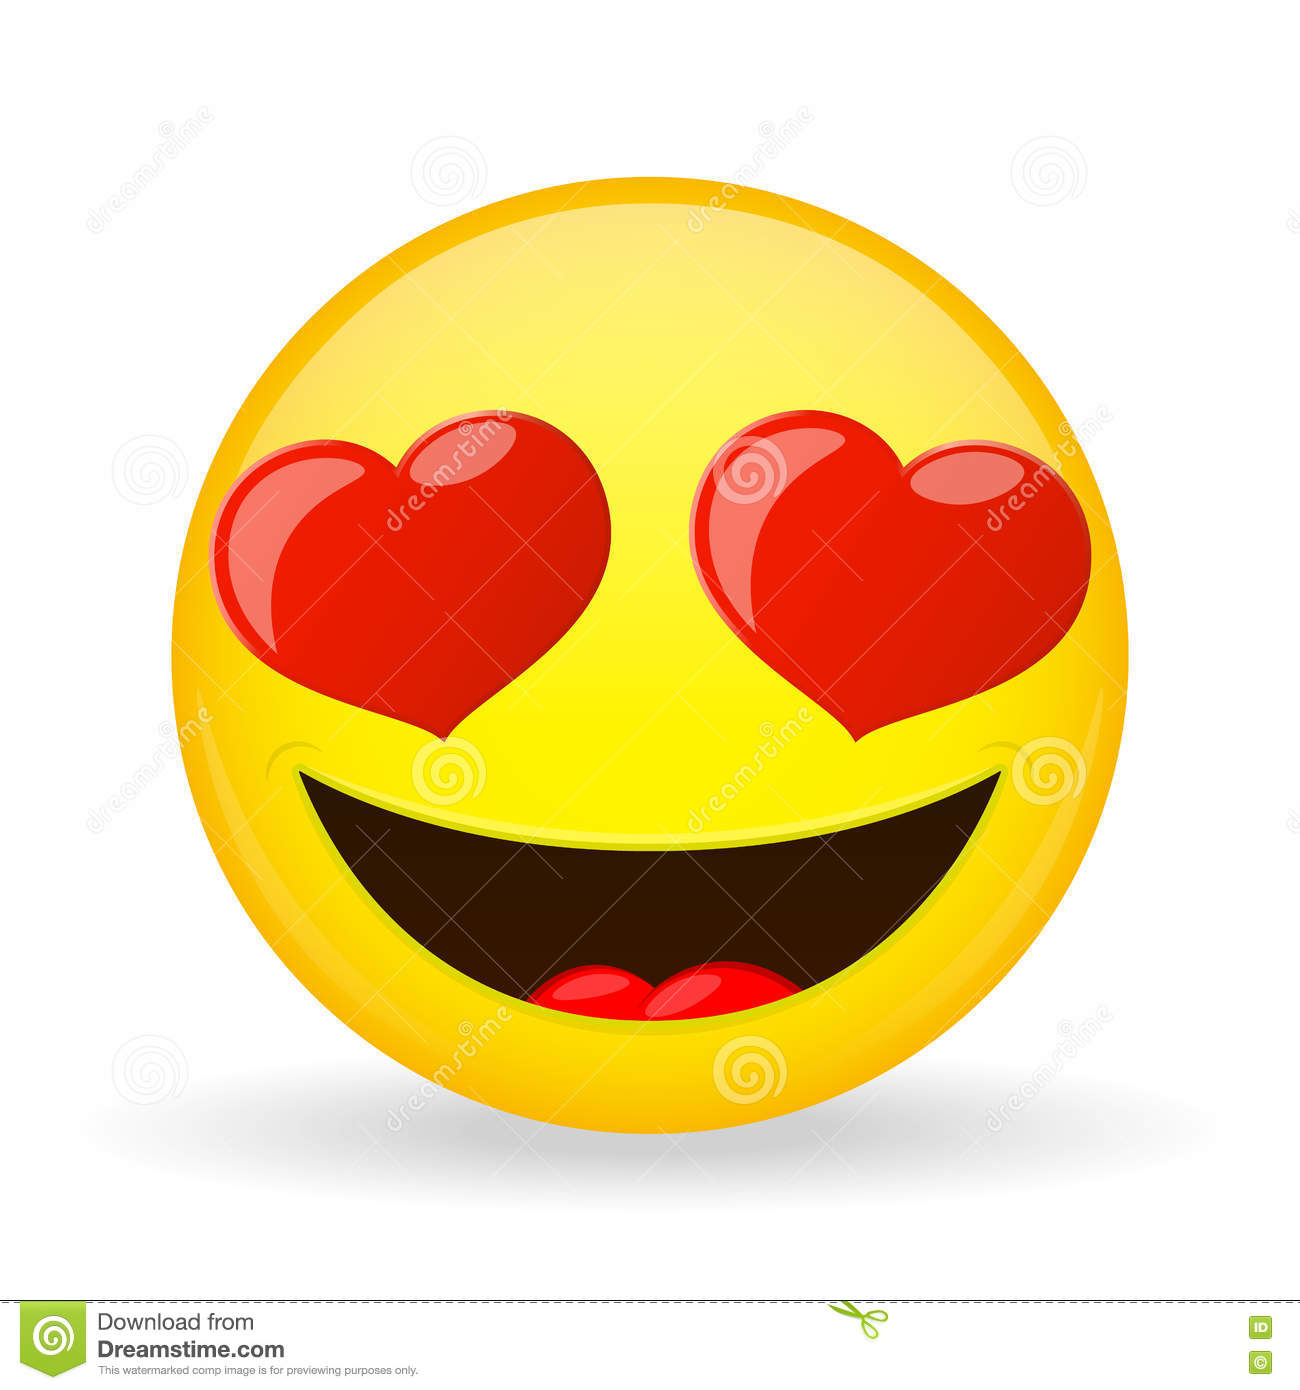 Download Wallpaper Love Emoji - emoji-love-emotion-happiness-amorously-smiling-emoticon-cartoon-style-vector-illustration-smile-icon-81819455  Best Photo Reference_624213.jpg